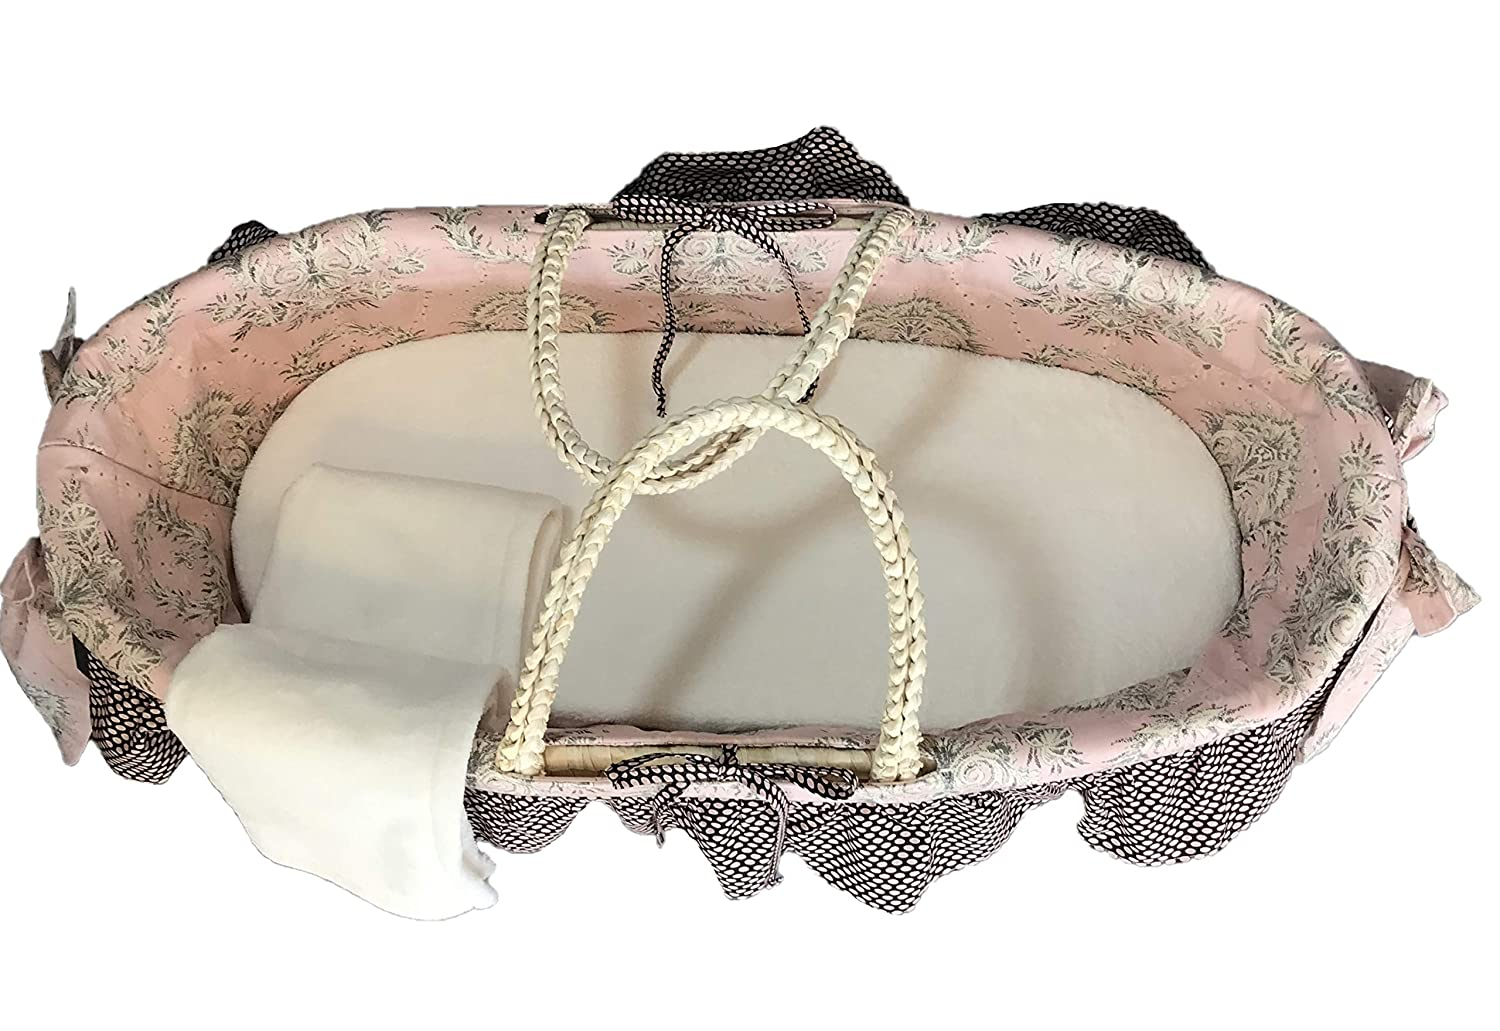 Wicker Moses Basket by Cotton Tale Baby Shower Gift Elegant Pink and Brown Floral /& Polka Dot Ruffle with Bow Perfect for Baby Girl Nightingale